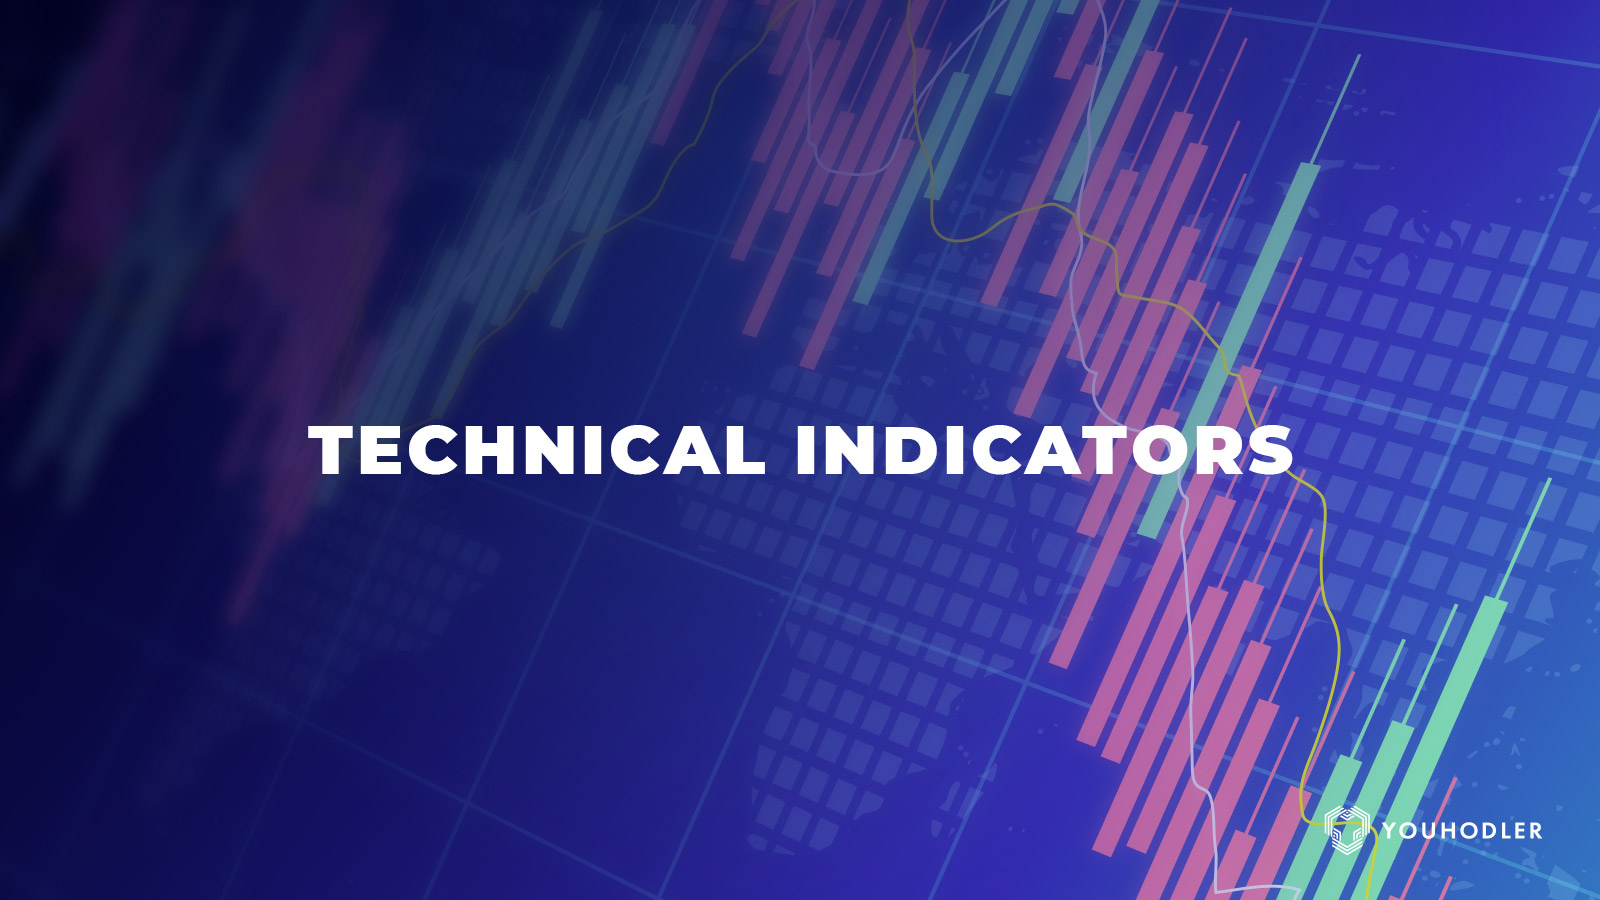 technical indicators reads in big bold letters against a purple backdrop